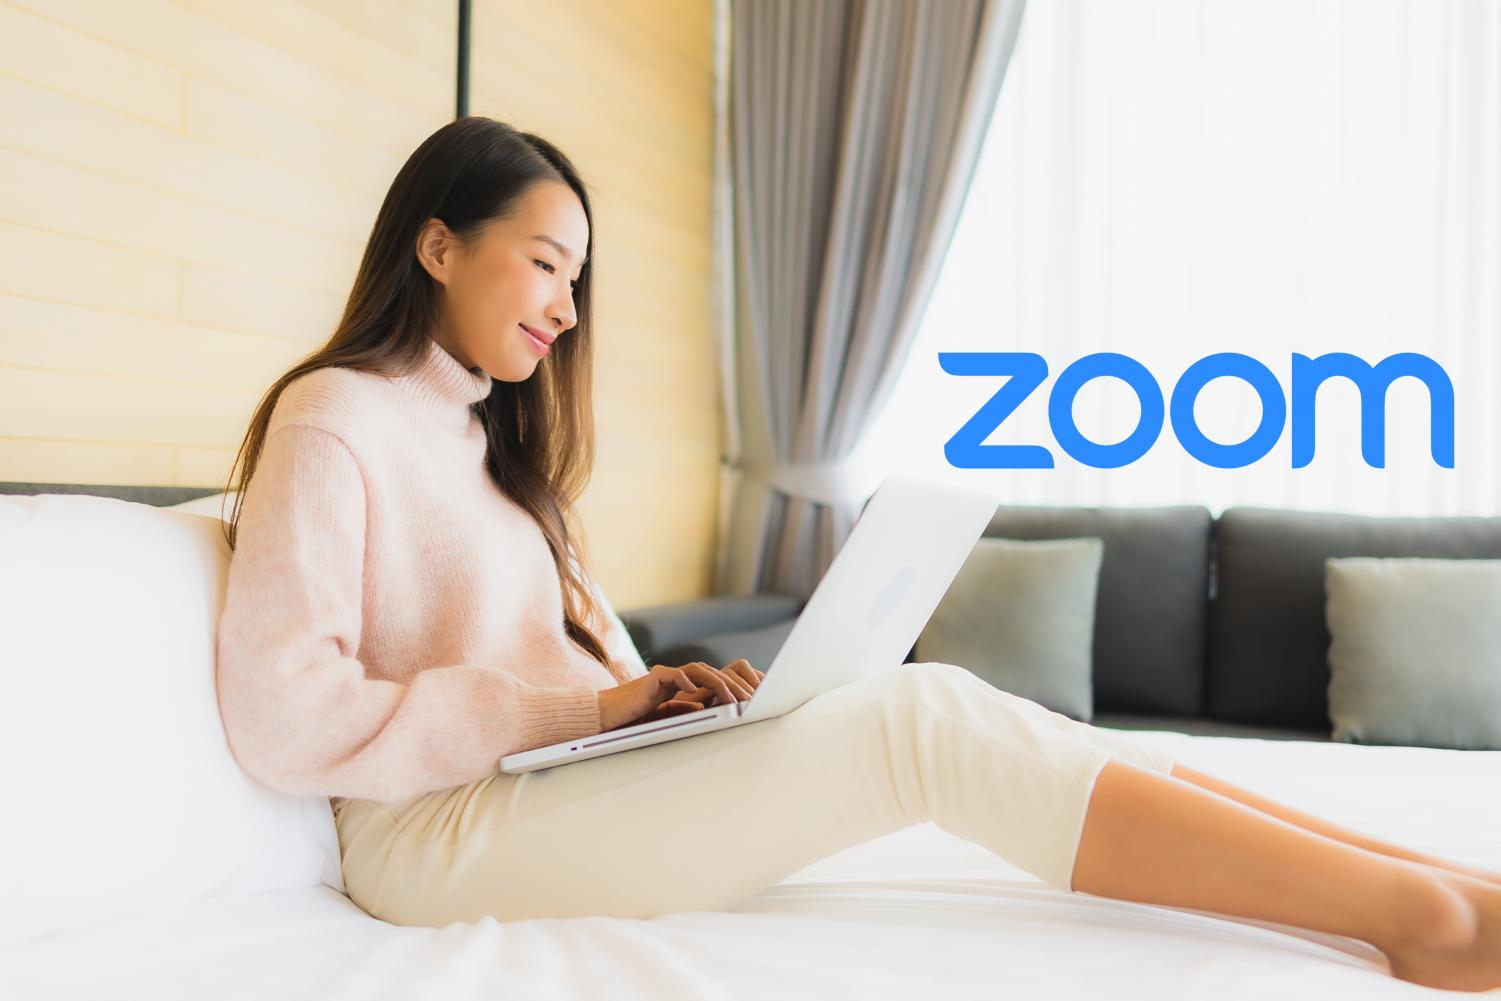 Five Free Online Games To Play On Zoom With Friends The Oak Leaf